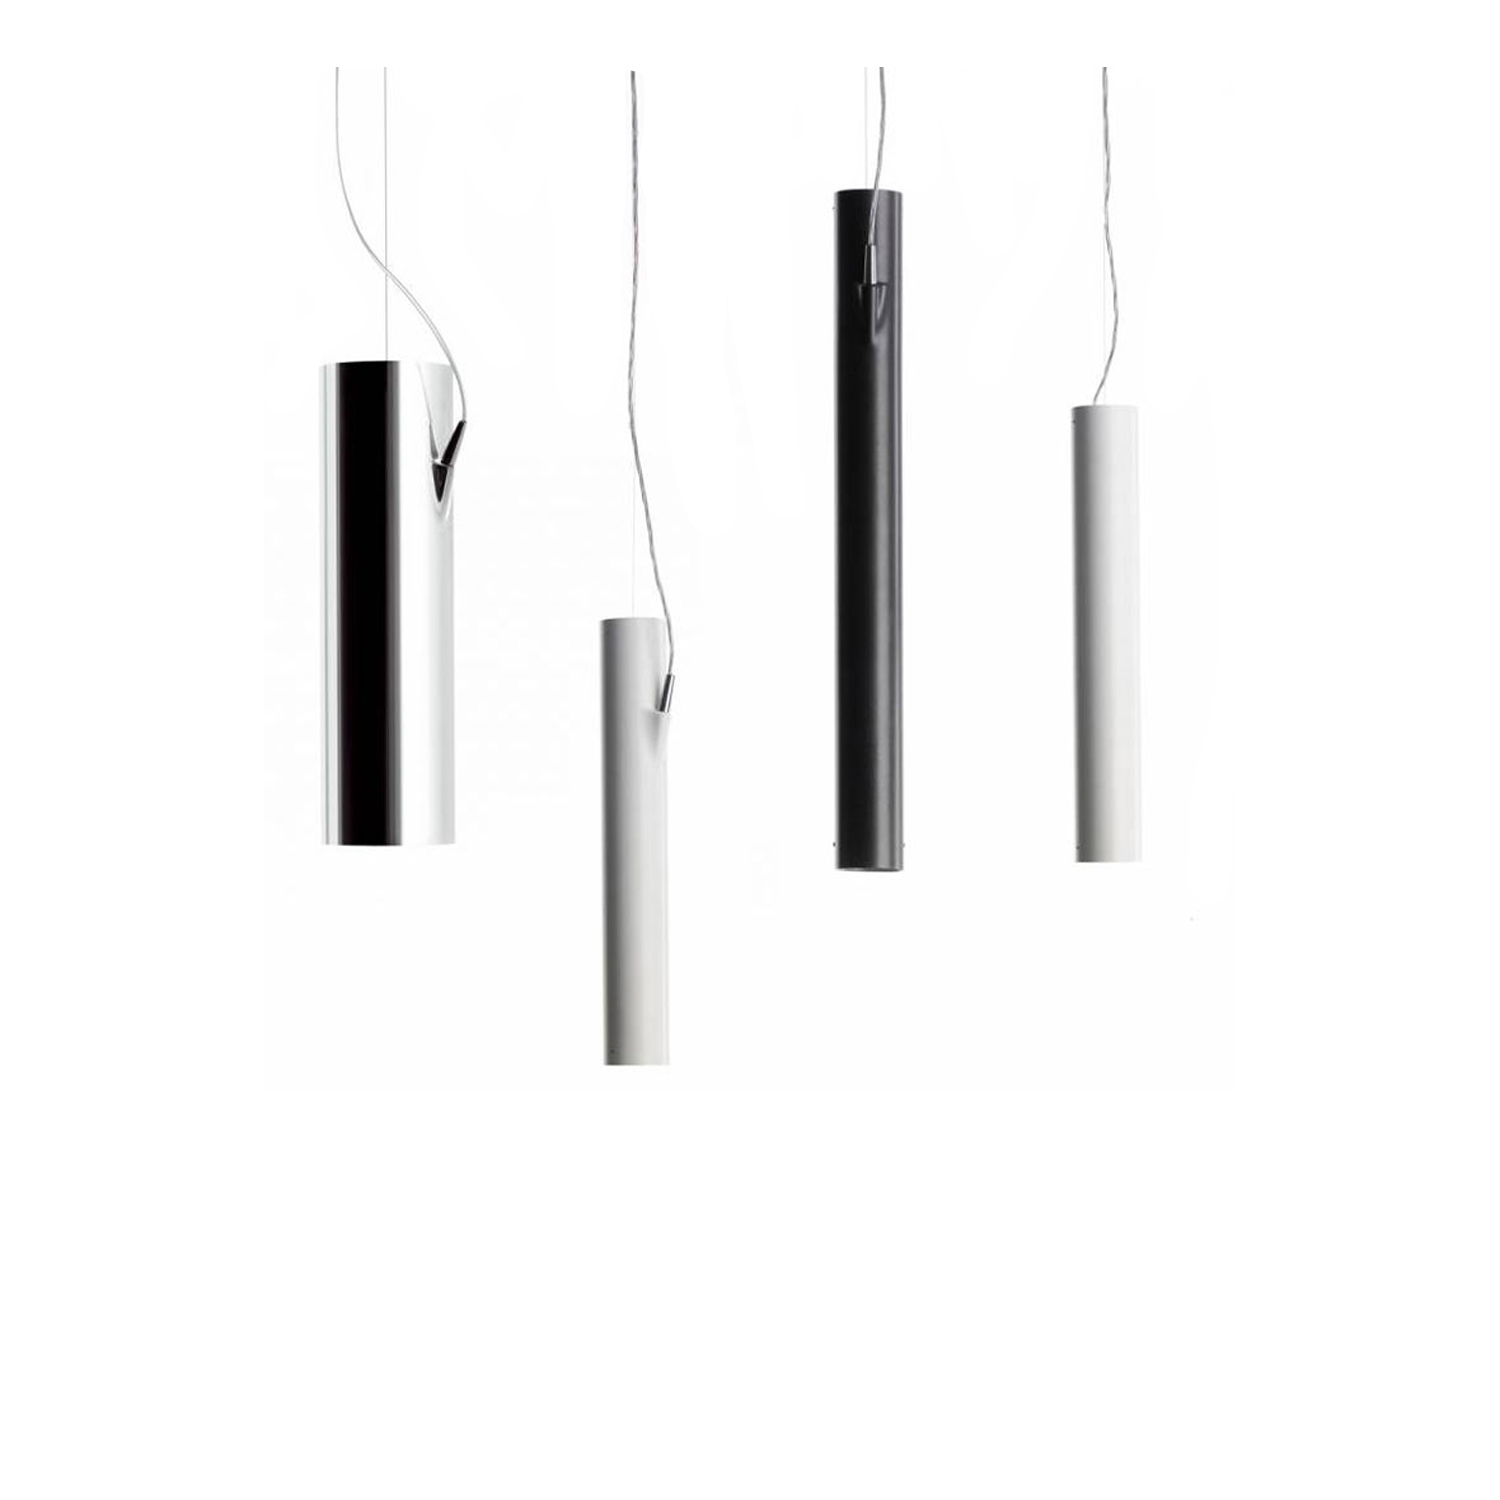 E04 Suspension Lamp - Aluminium suspensions in two diameters and different lengths. The power cable enters the side of the cylinder, providing two-way emission without casting a shadow on the ceiling. The light source in a recessed position, preventing glare and improving visual comfort.  Size and finishes are varies please enquire for more information | Matter of Stuff